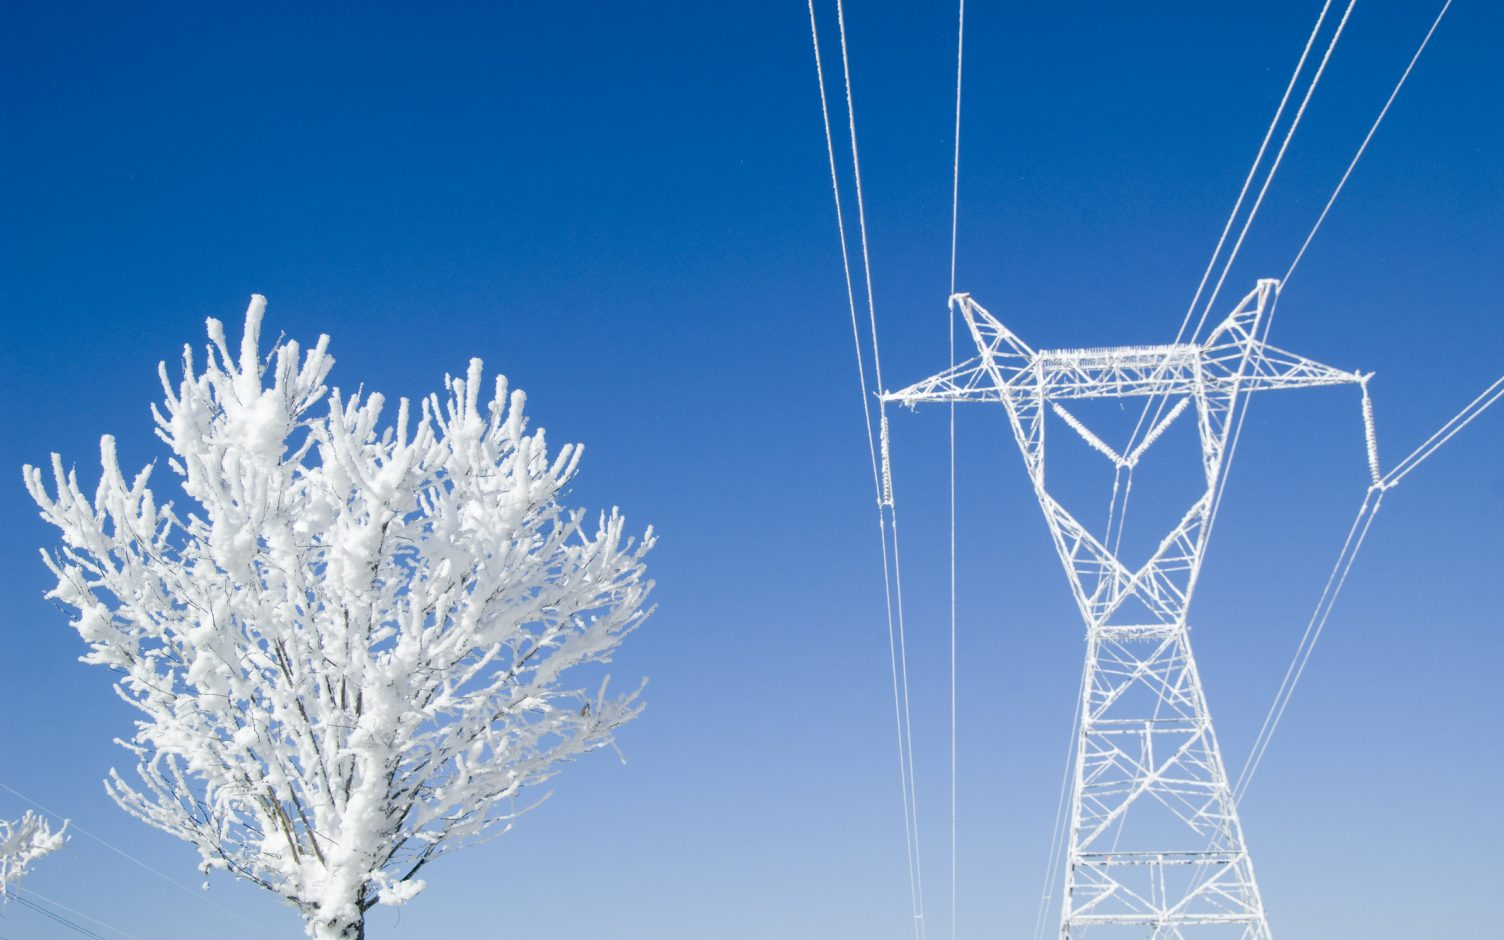 This winter has seen high prices across a number of markets, including Dynamic Containment. Image: Getty